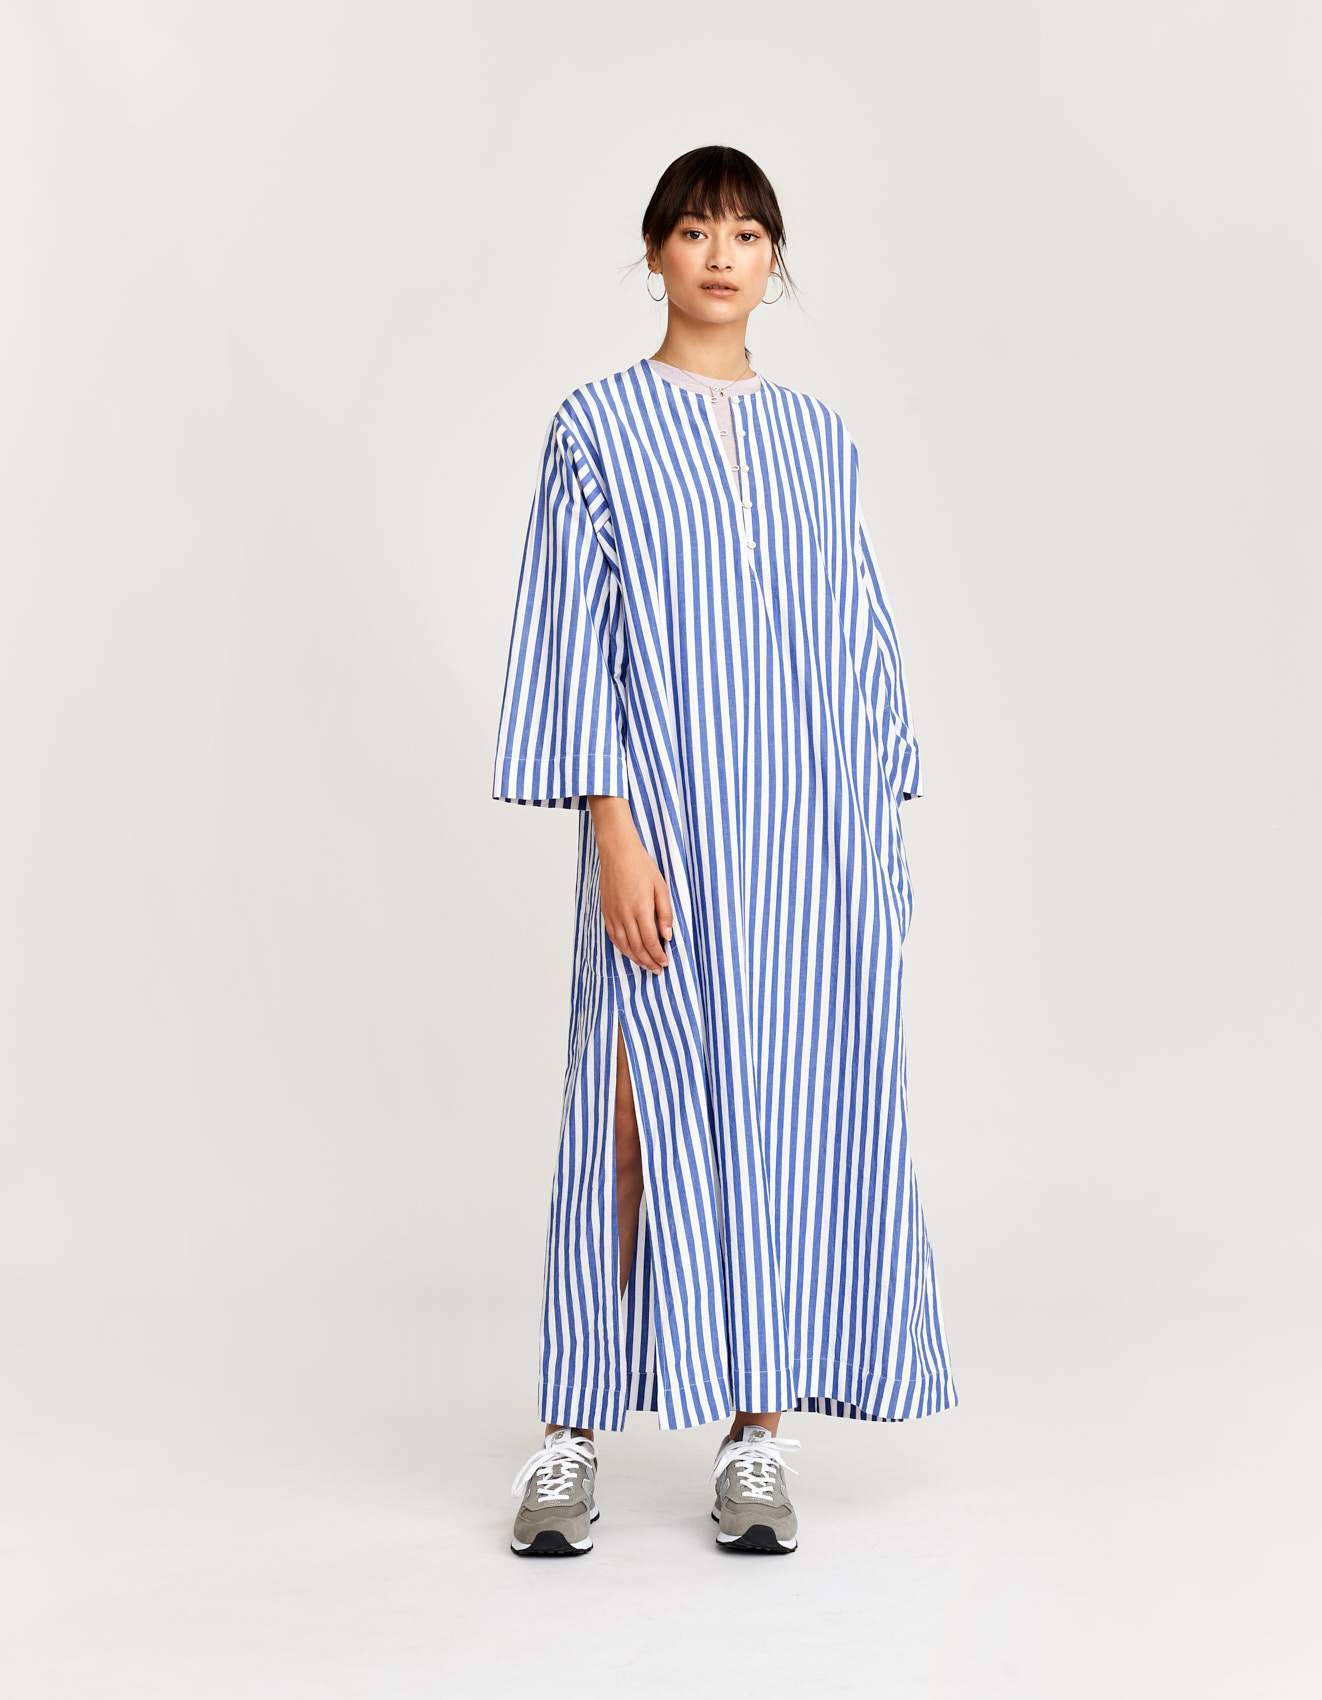 Bellerose striped cotton maxi dress for women